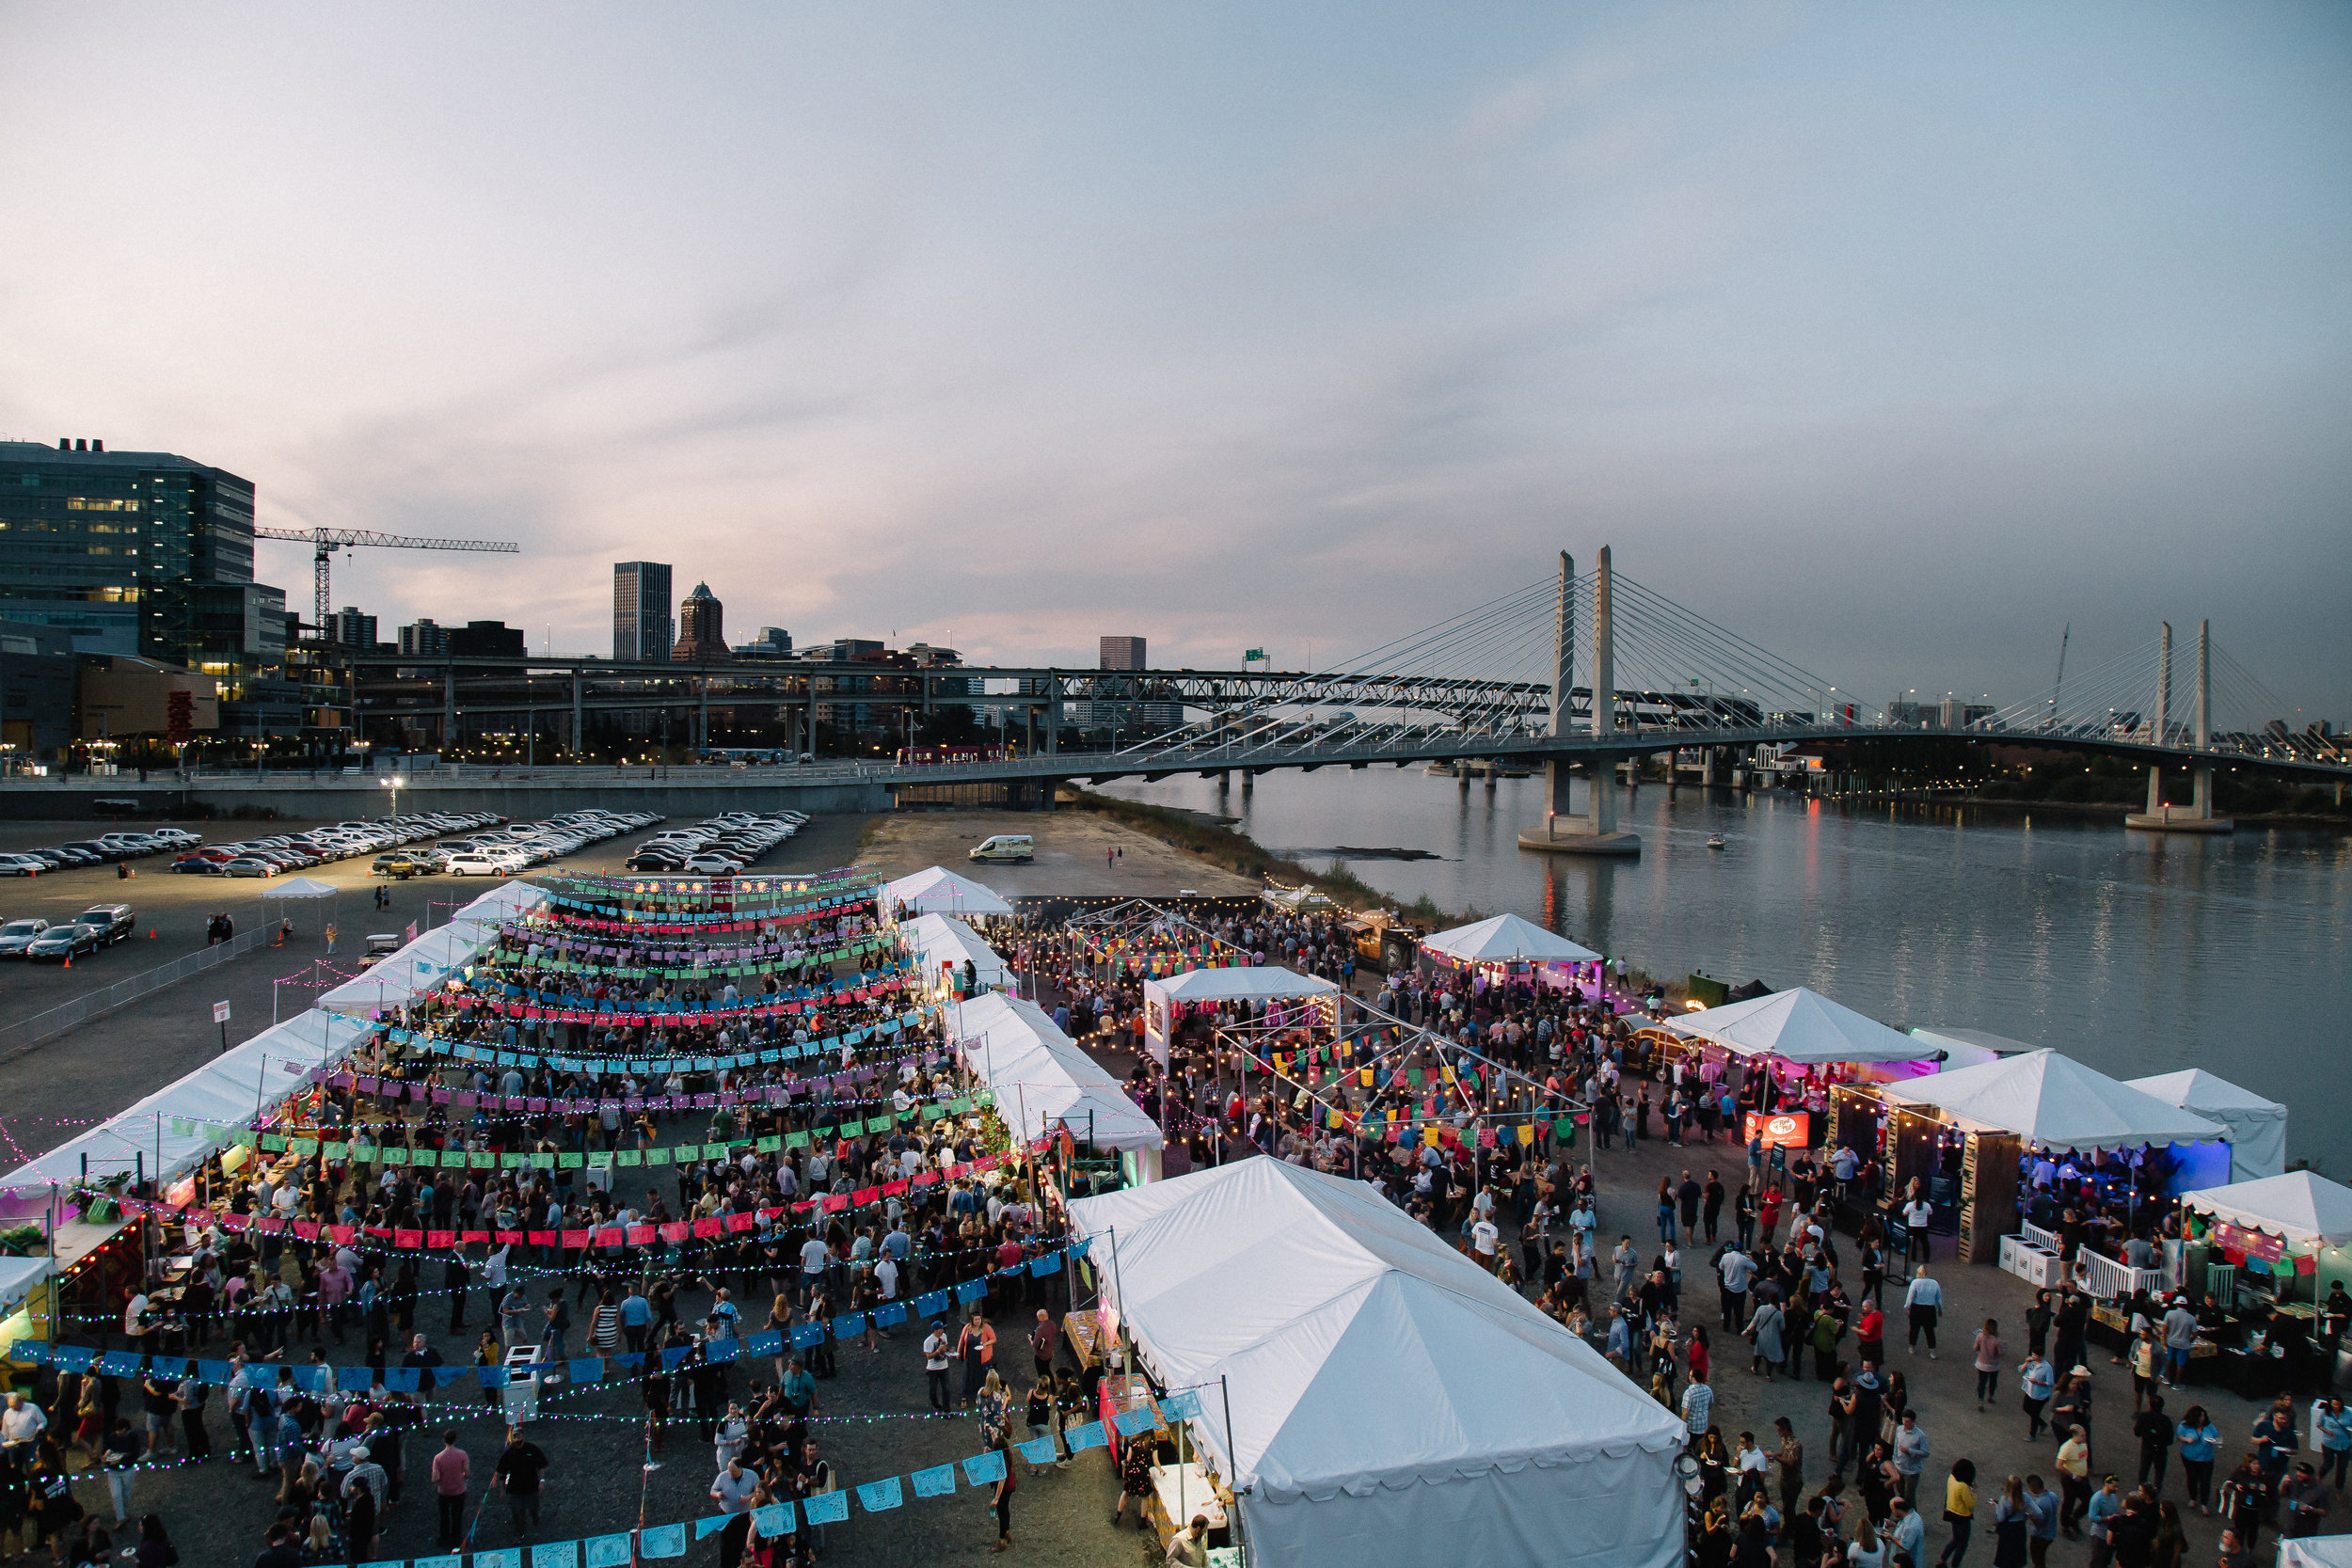 Scenes from before sunset at Night Market